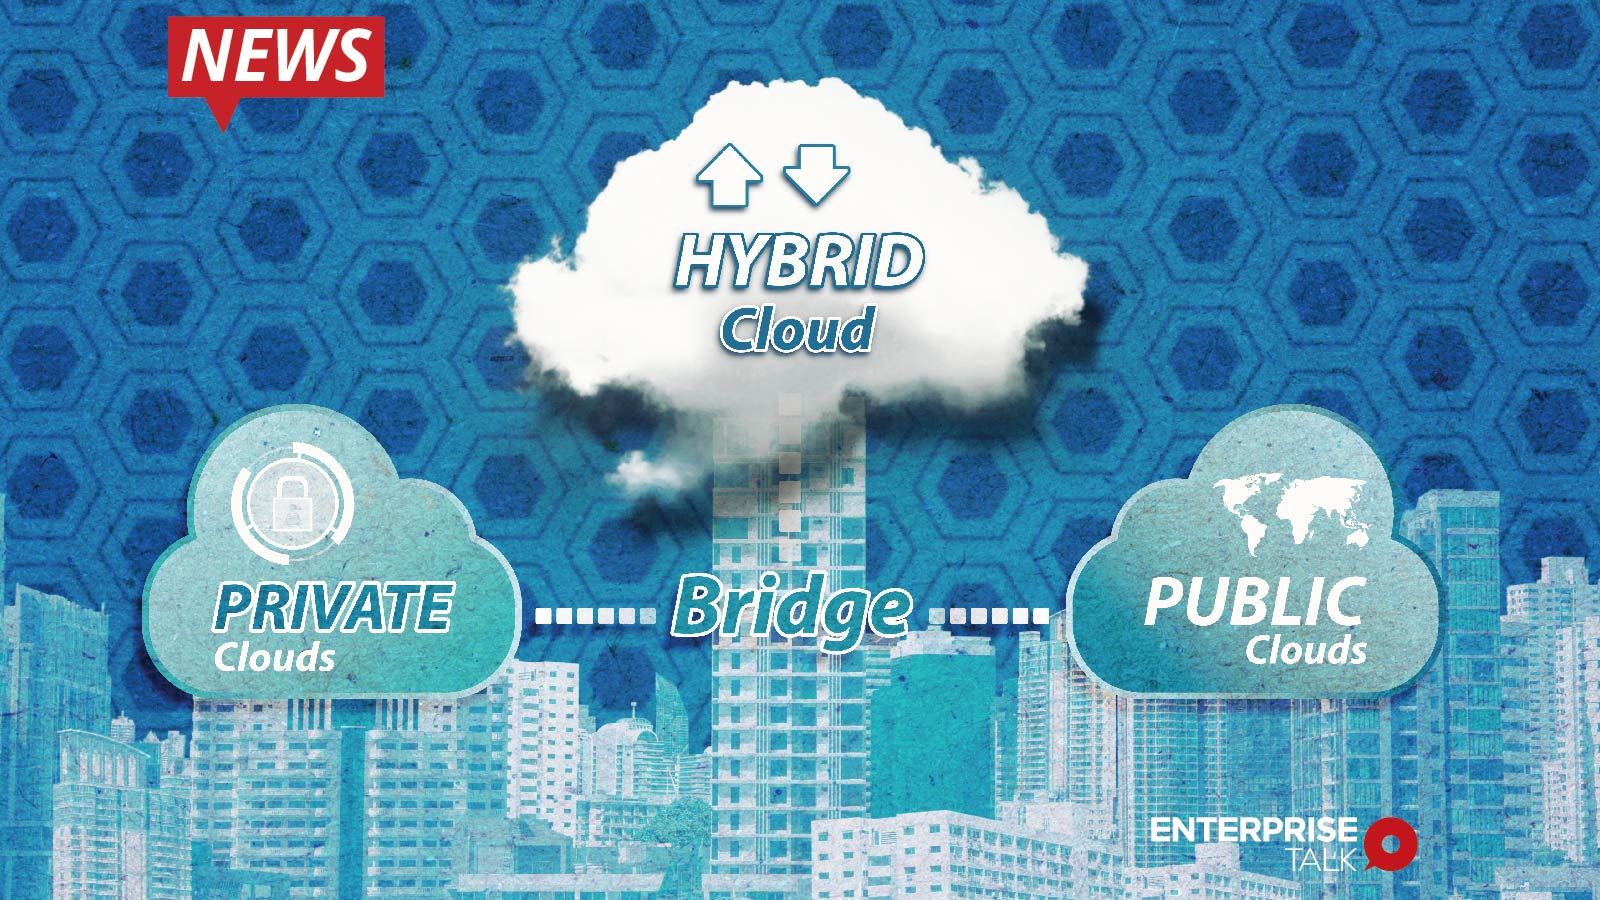 IBM and AT&T Bring Open Hybrid Cloud Services to Enterprise Clients for the 5G Era